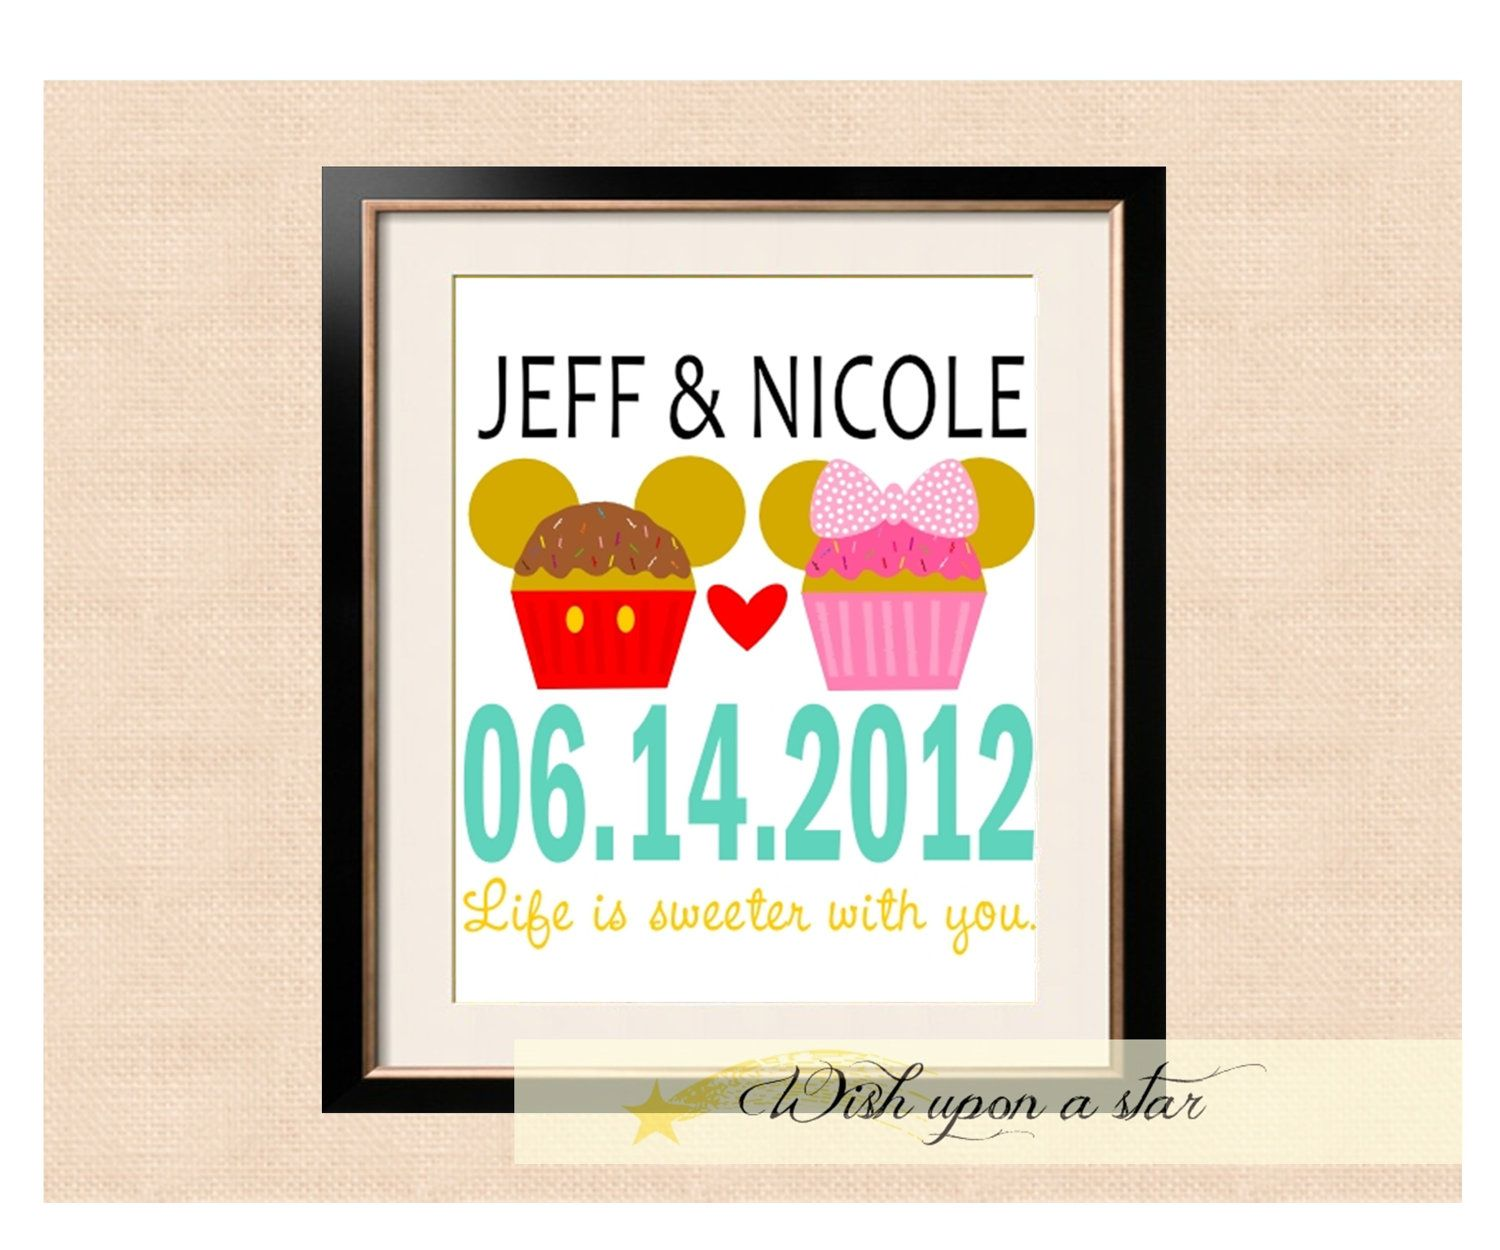 Wedding anniversary decoration ideas at home  Disney Mickey and Mickey Cupcake Wedding Anniversary Date